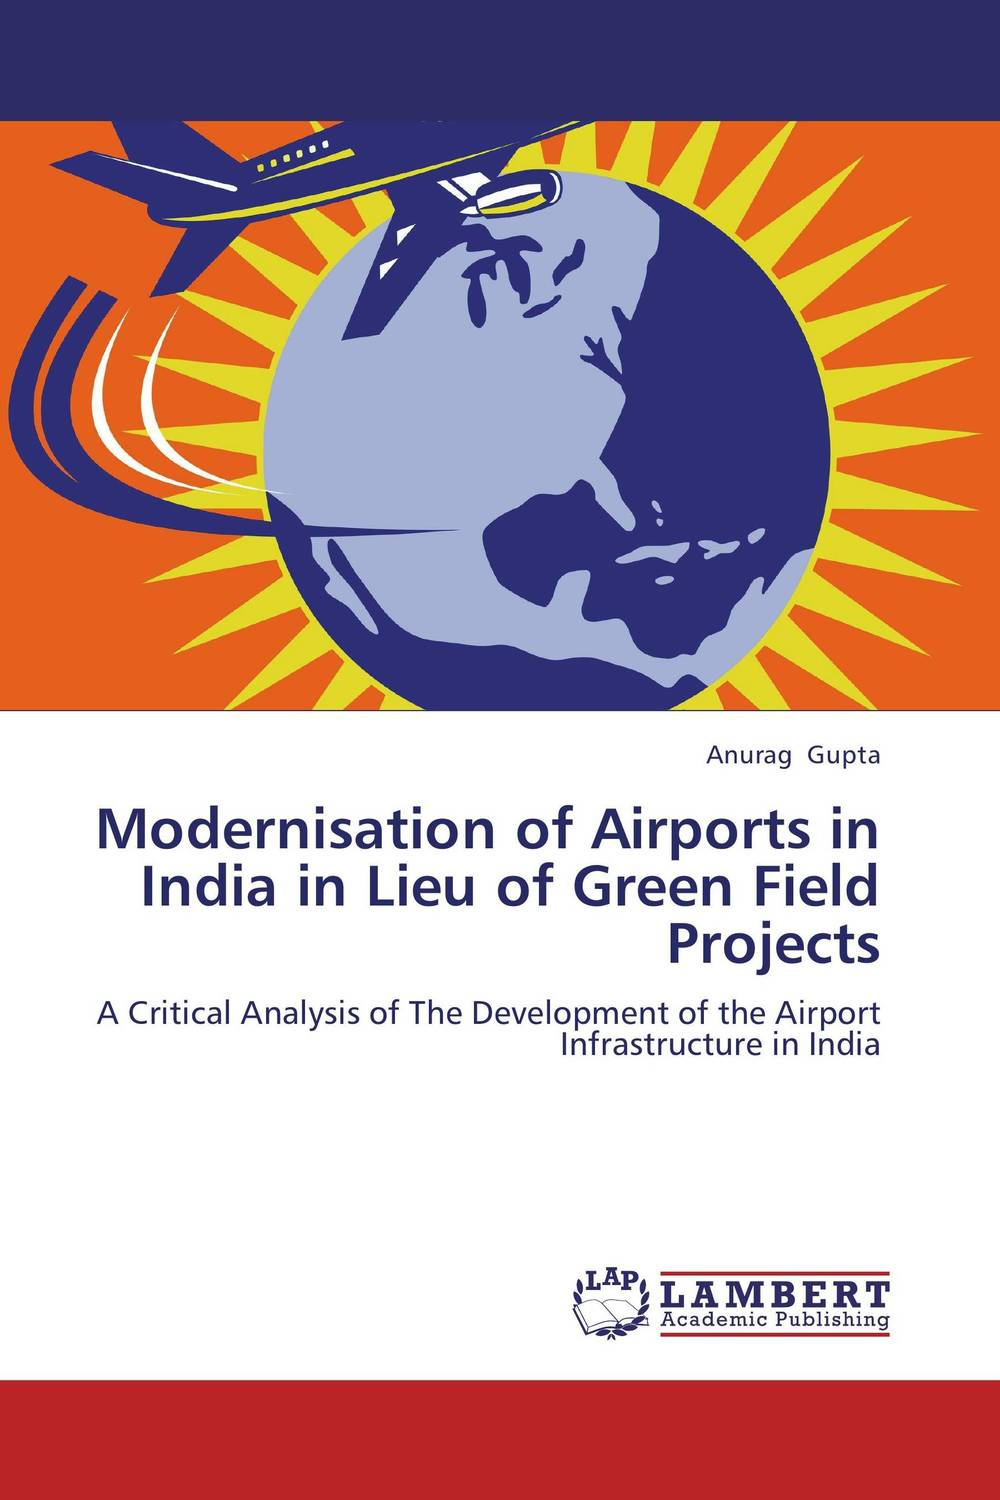 Modernisation of Airports in India in Lieu of Green Field Projects майка классическая printio sadhus of india